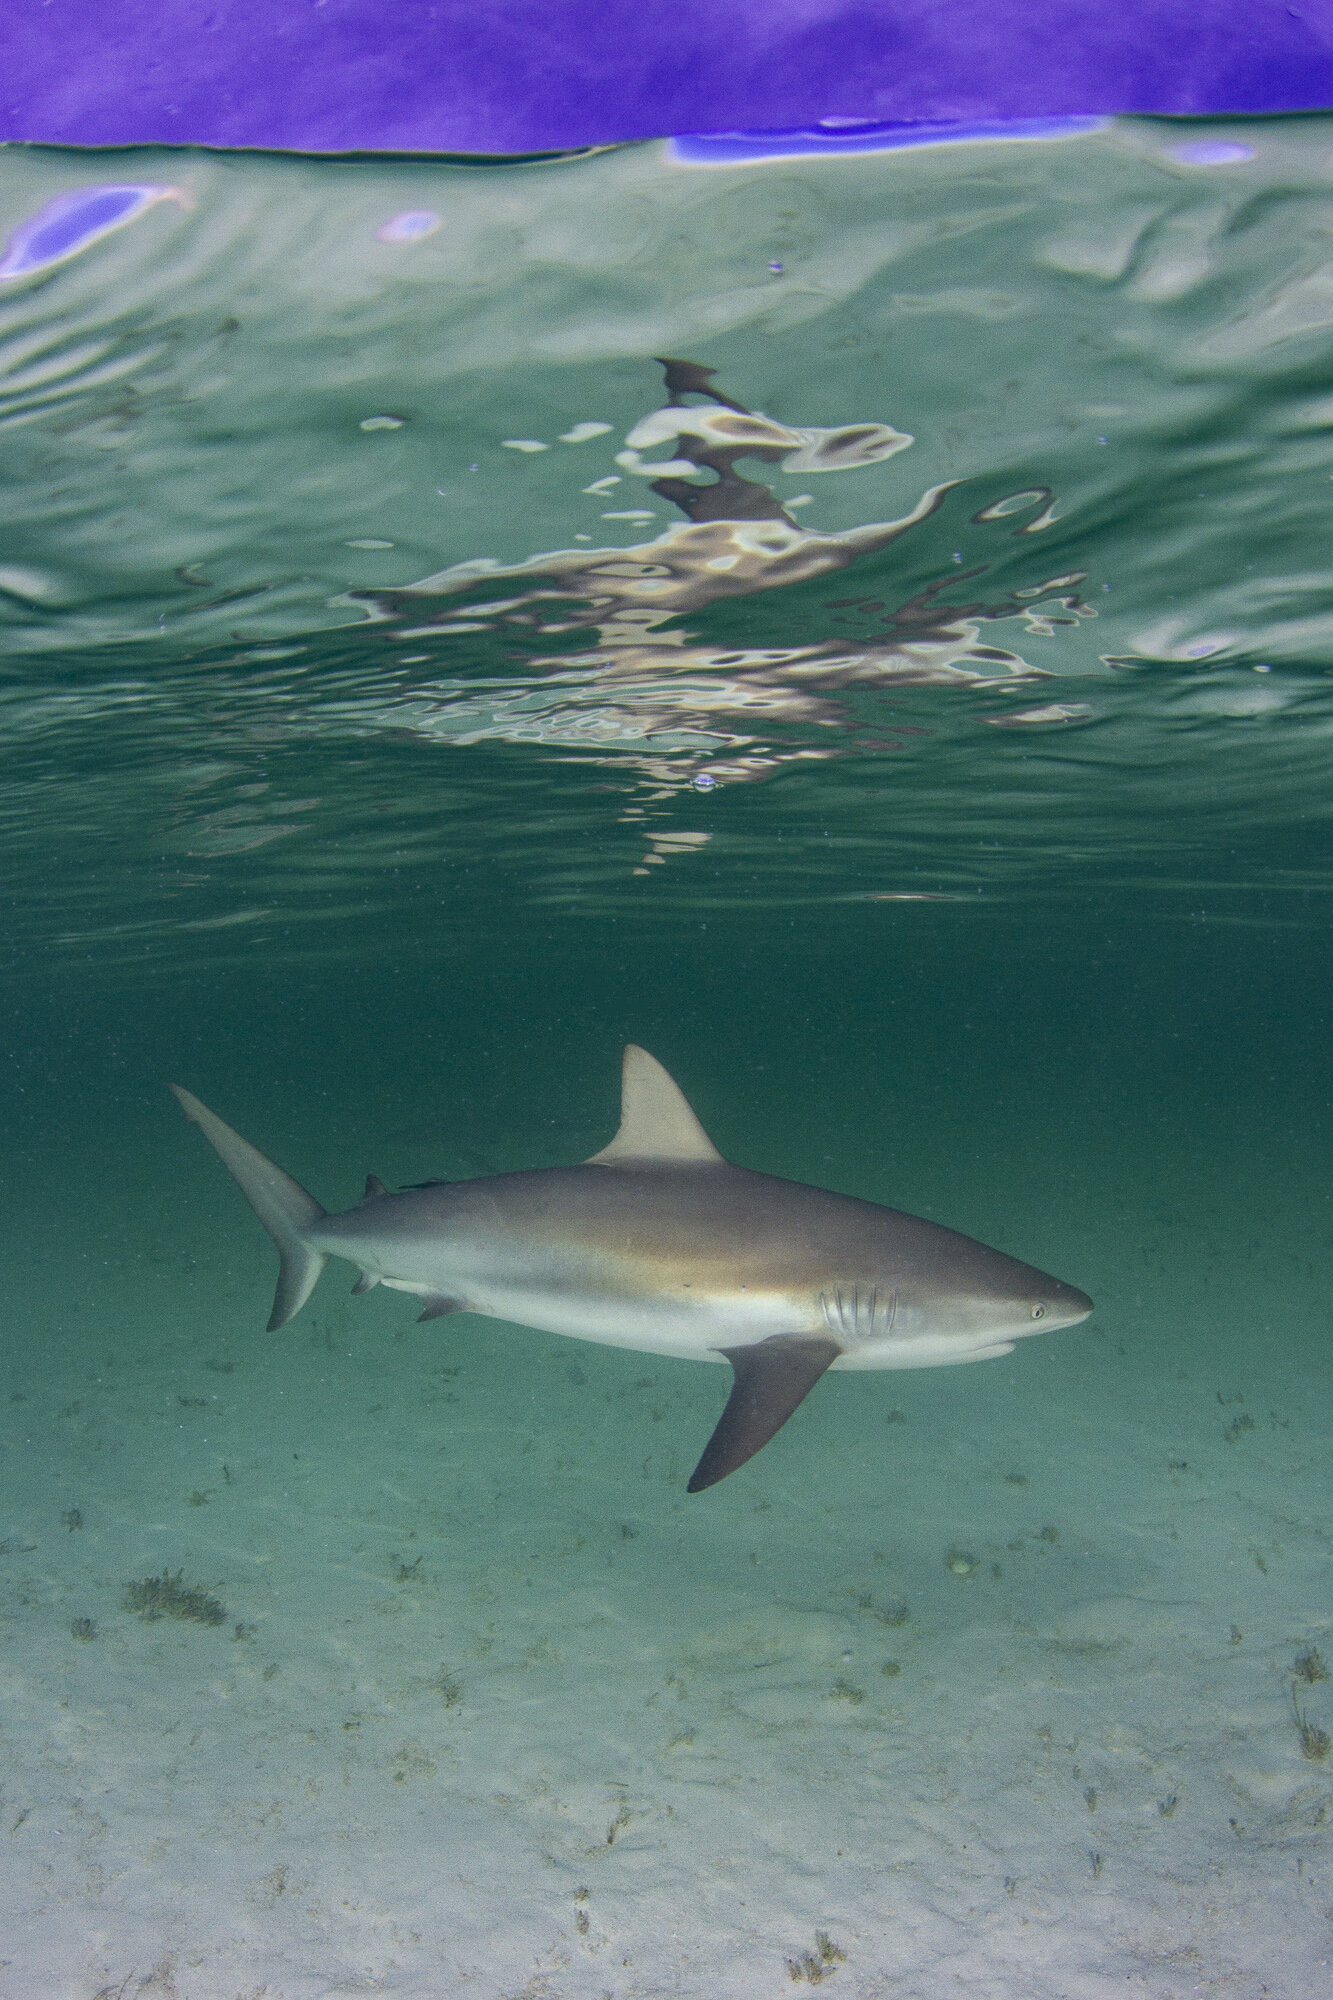 A bold reef shark took center stage during the activity!